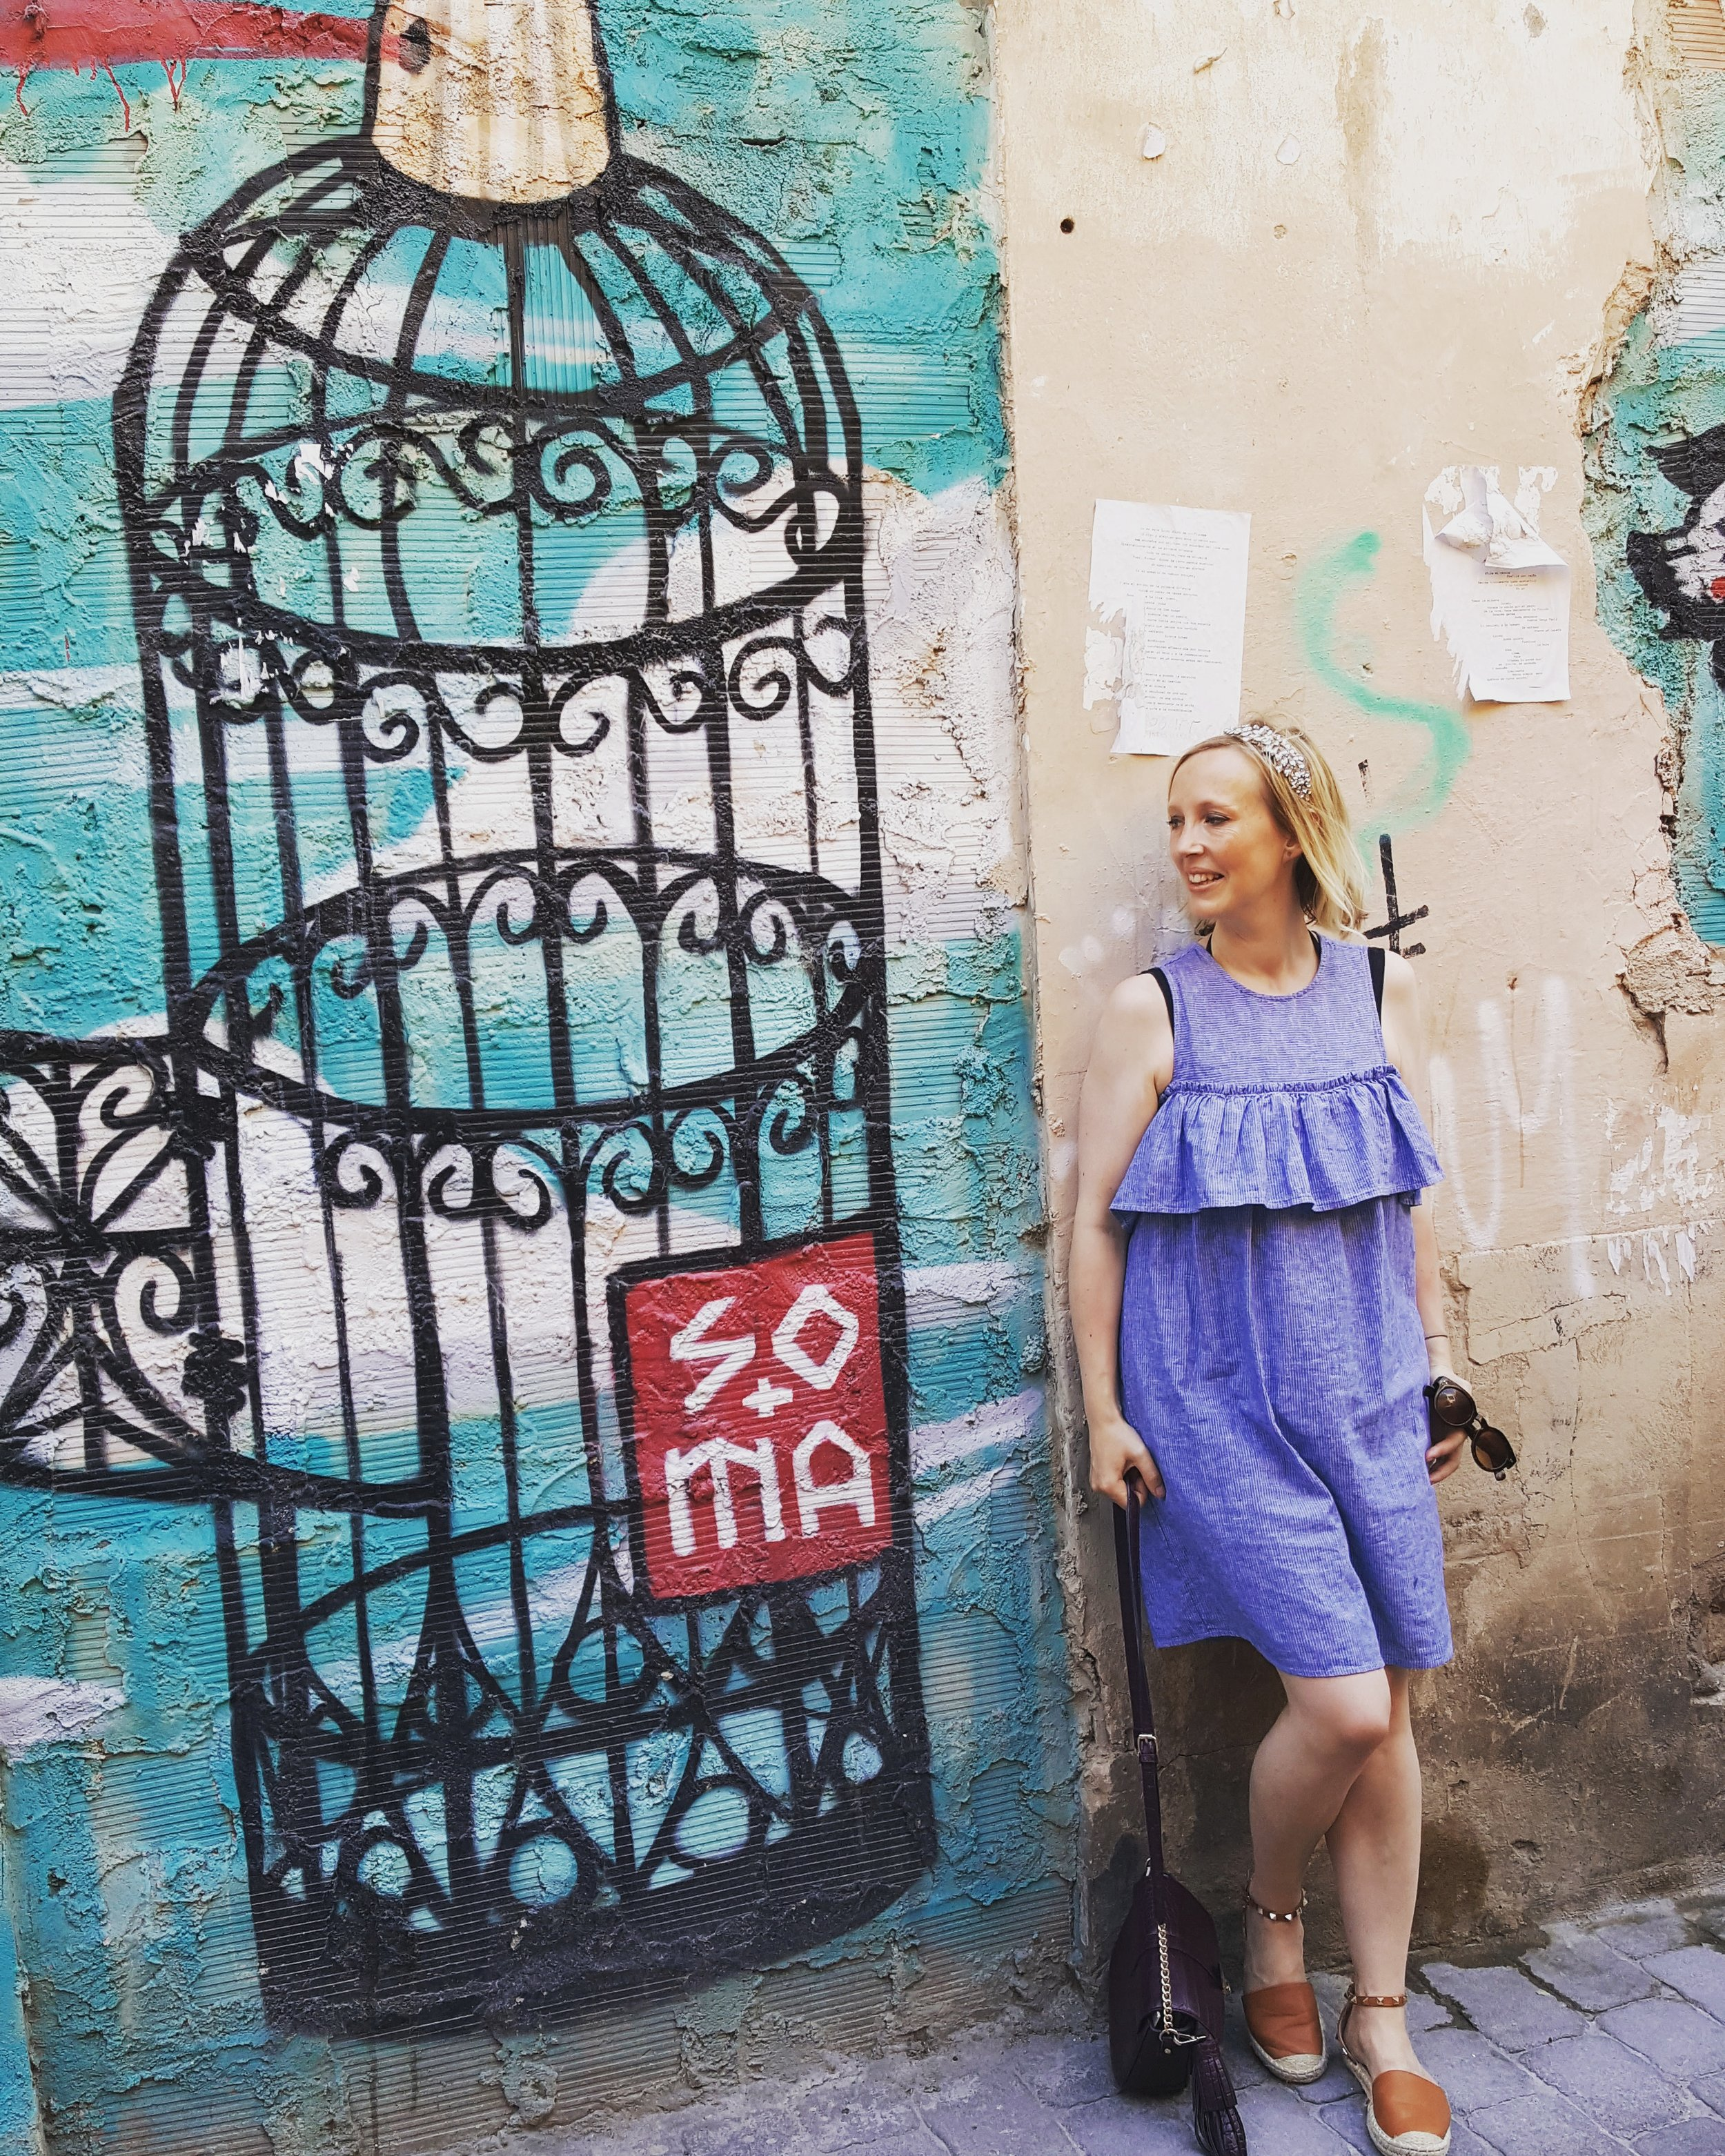 Being on a girlie break meant lots of time to pratt around getting Instagram shots against graffiti walls